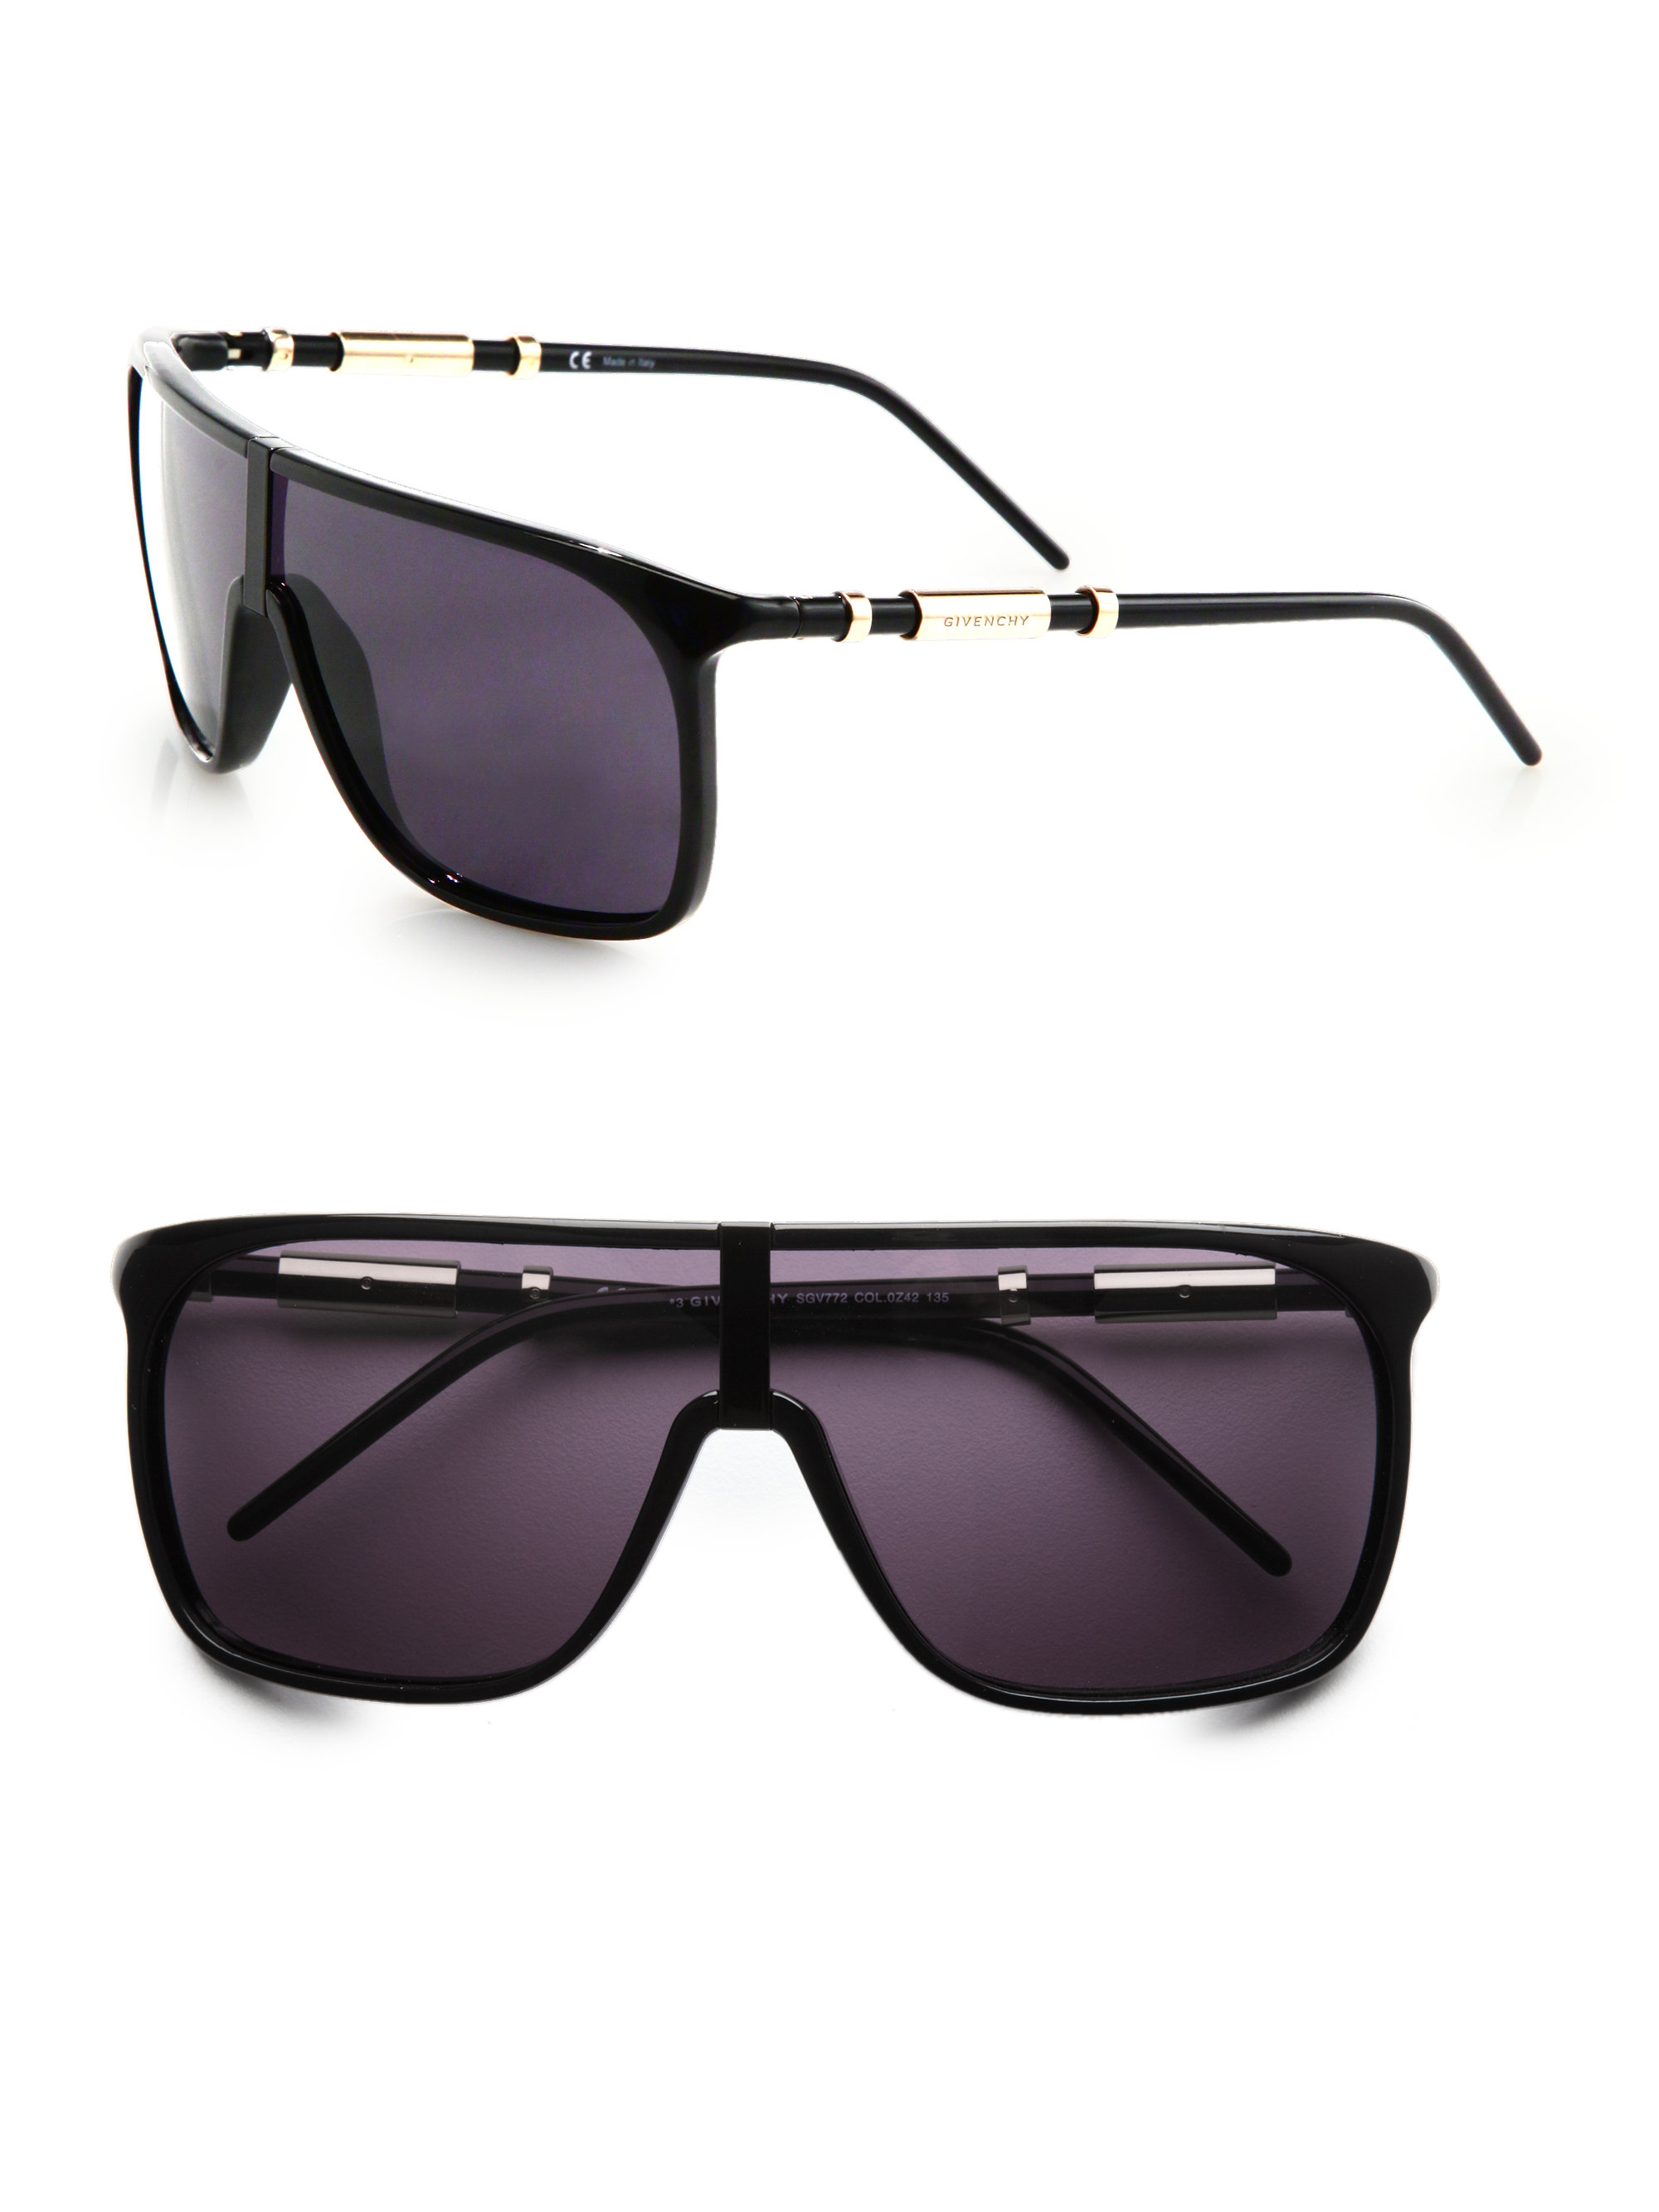 Givenchy Sunglasses Womens  givenchy resin shield sunglasses in black for men lyst